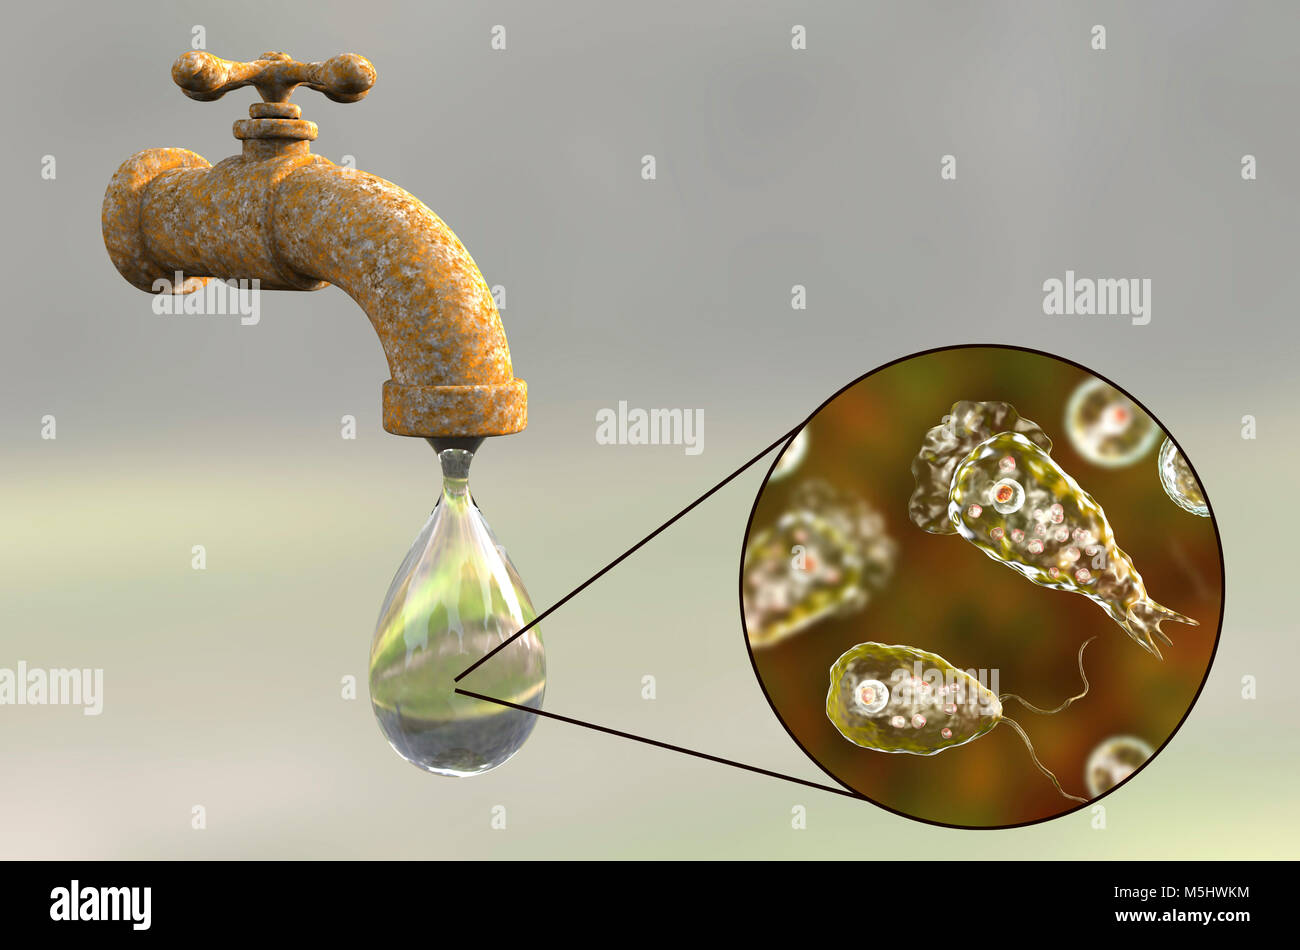 Tap water contaminated with the brain-eating amoeba Naegleria fowleri,computer illustration.This organism is an Stock Photo